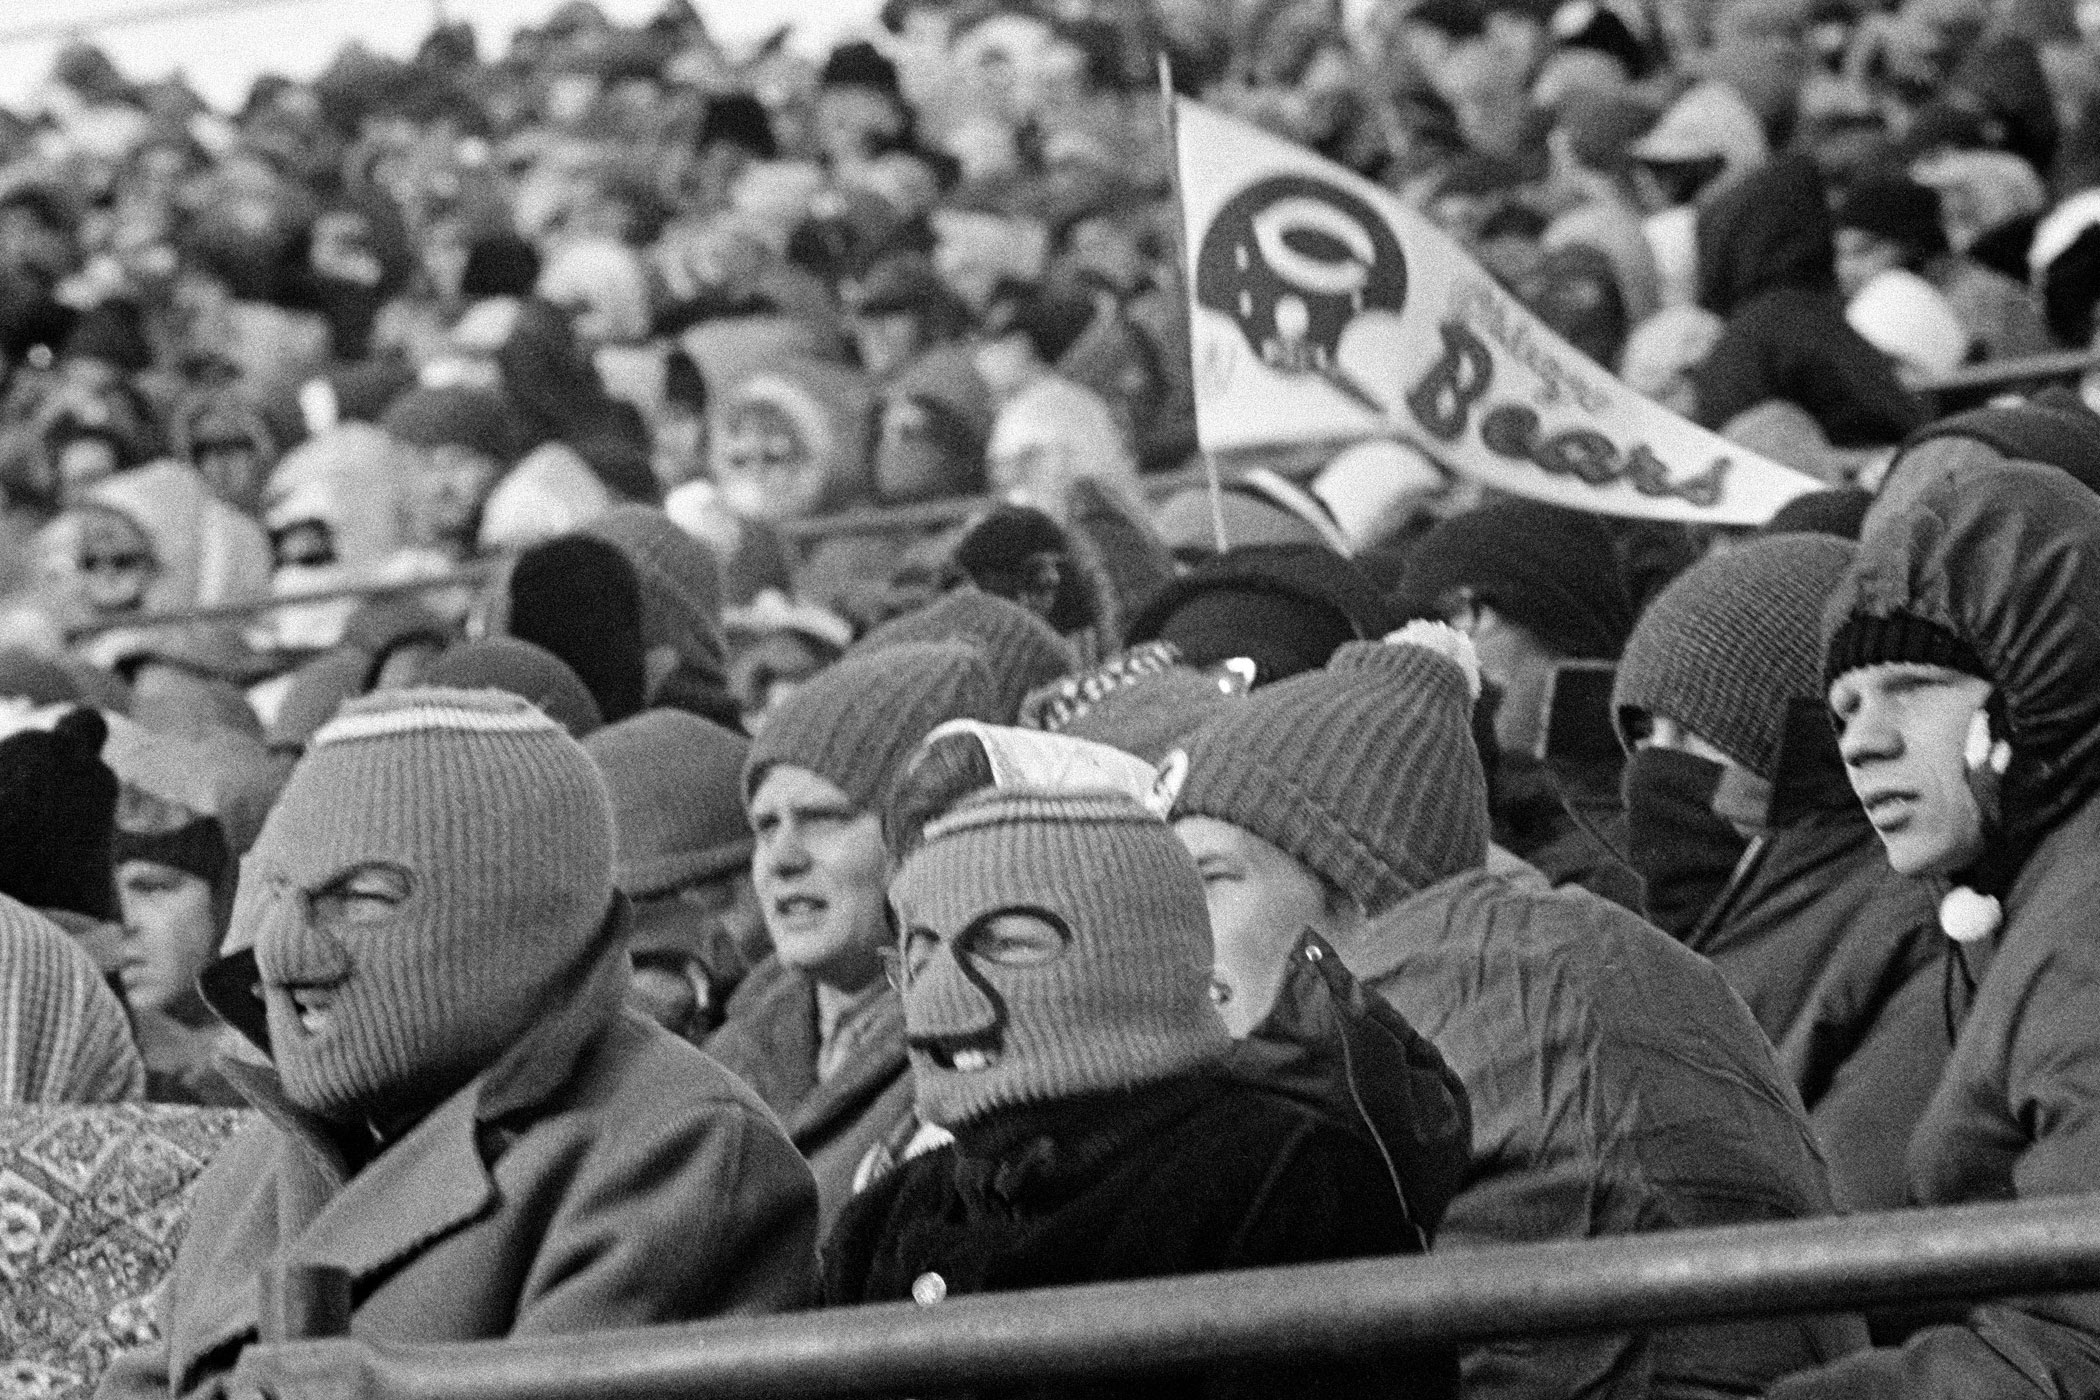 Temperature: -2°F (Wind Chill: -26°F)                               On Dec. 3, 1972, the Minnesota Vikings faced the Chicago Bears in freezing weather at Metropolitan Stadium. No photos are available from that game. Here, on Dec. 5, 1970, fans braved 10-degree weather to see the Bears face the Vikings in Minneapolis.